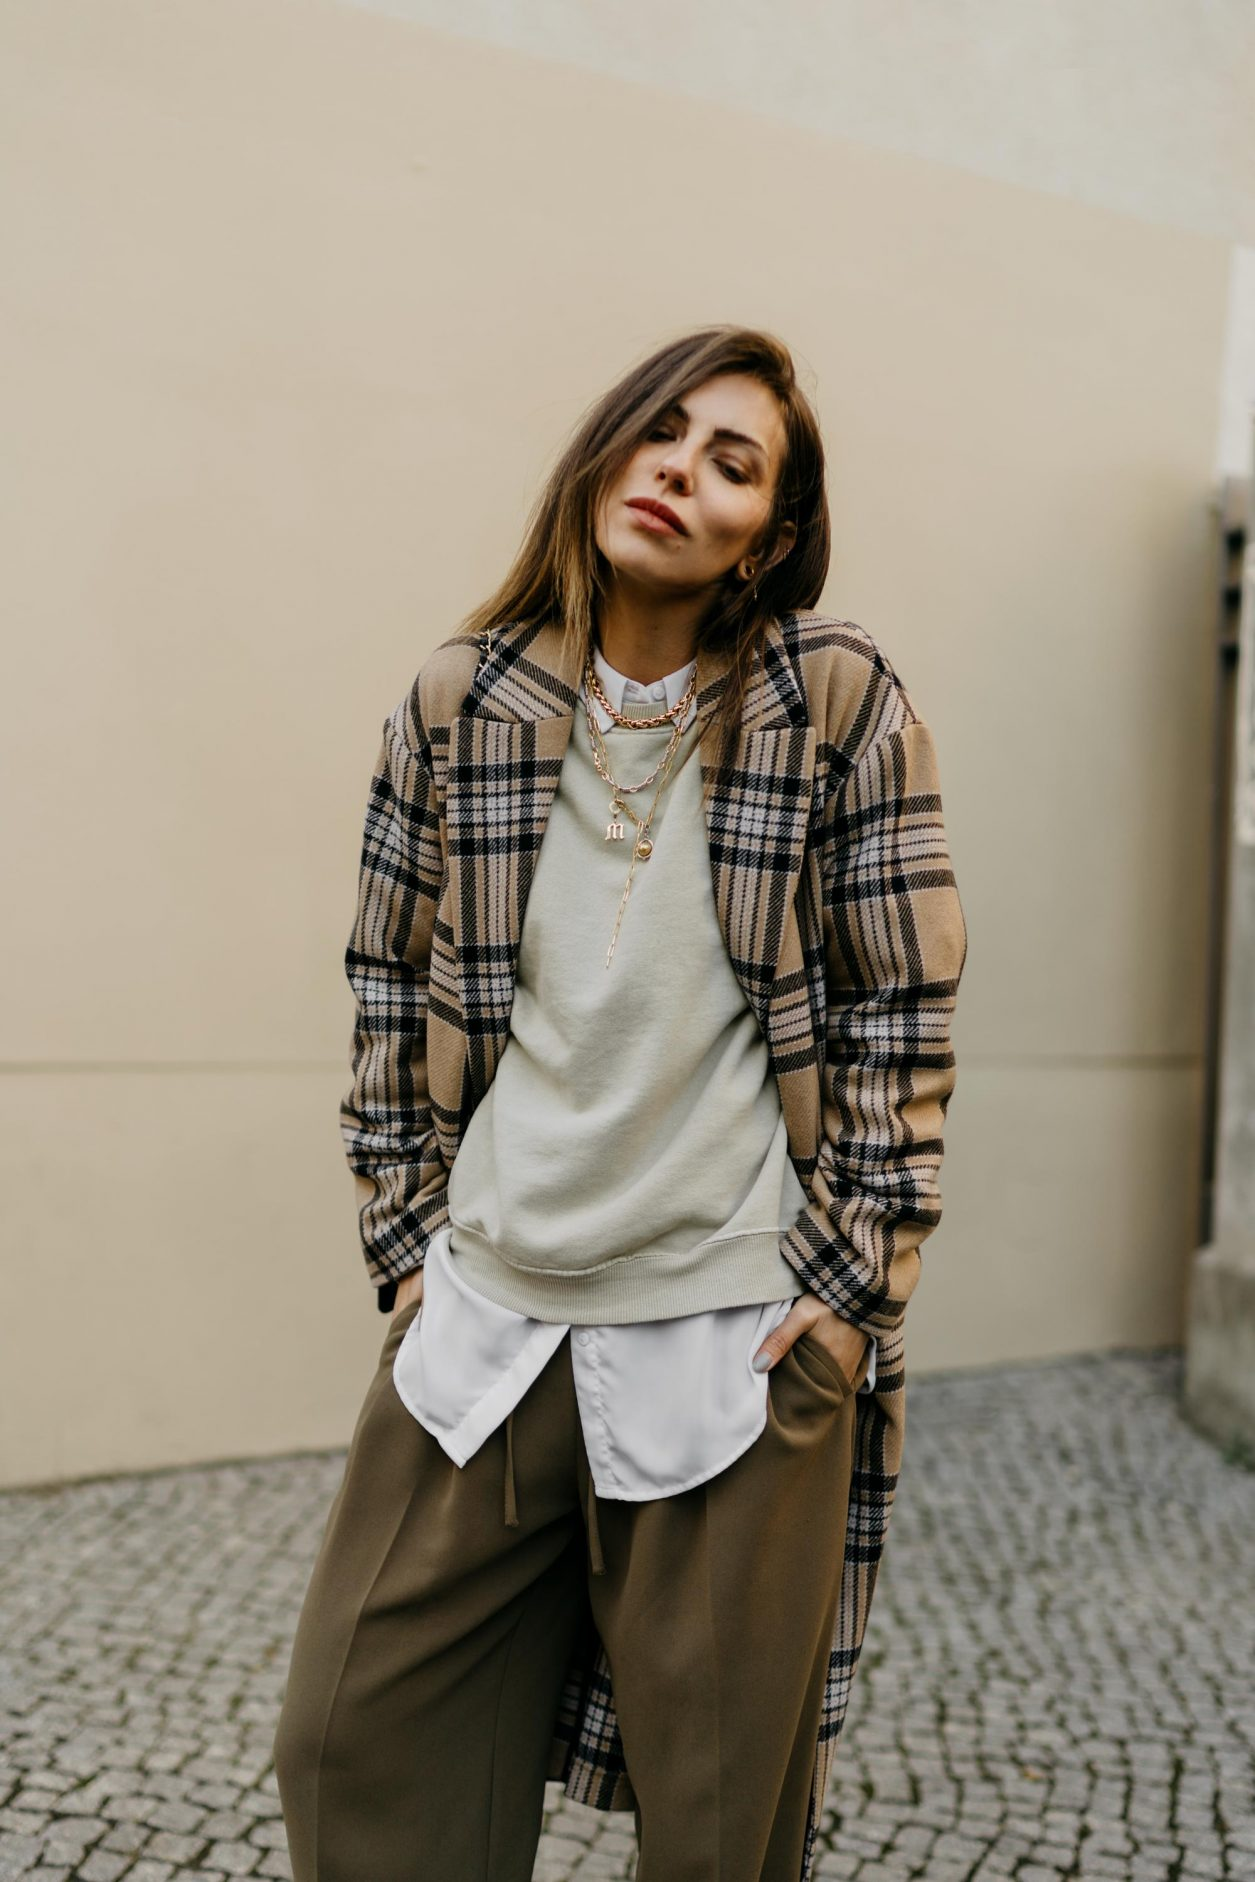 Streetstyle by Masha Sedgwick | Fashion and beauty blogger from Berlin, Germany | Everyday outfit inspiration, feminine casual ootd, cozy spring outfit | Wearing SET fashion beige black checked wool coat, sage green oversized sweatshirt by Topshop, brown wide jogging pants by Topshop, white oversized blouse by SET fashion, black vintage Chanel shoulder bag, golden necklaces